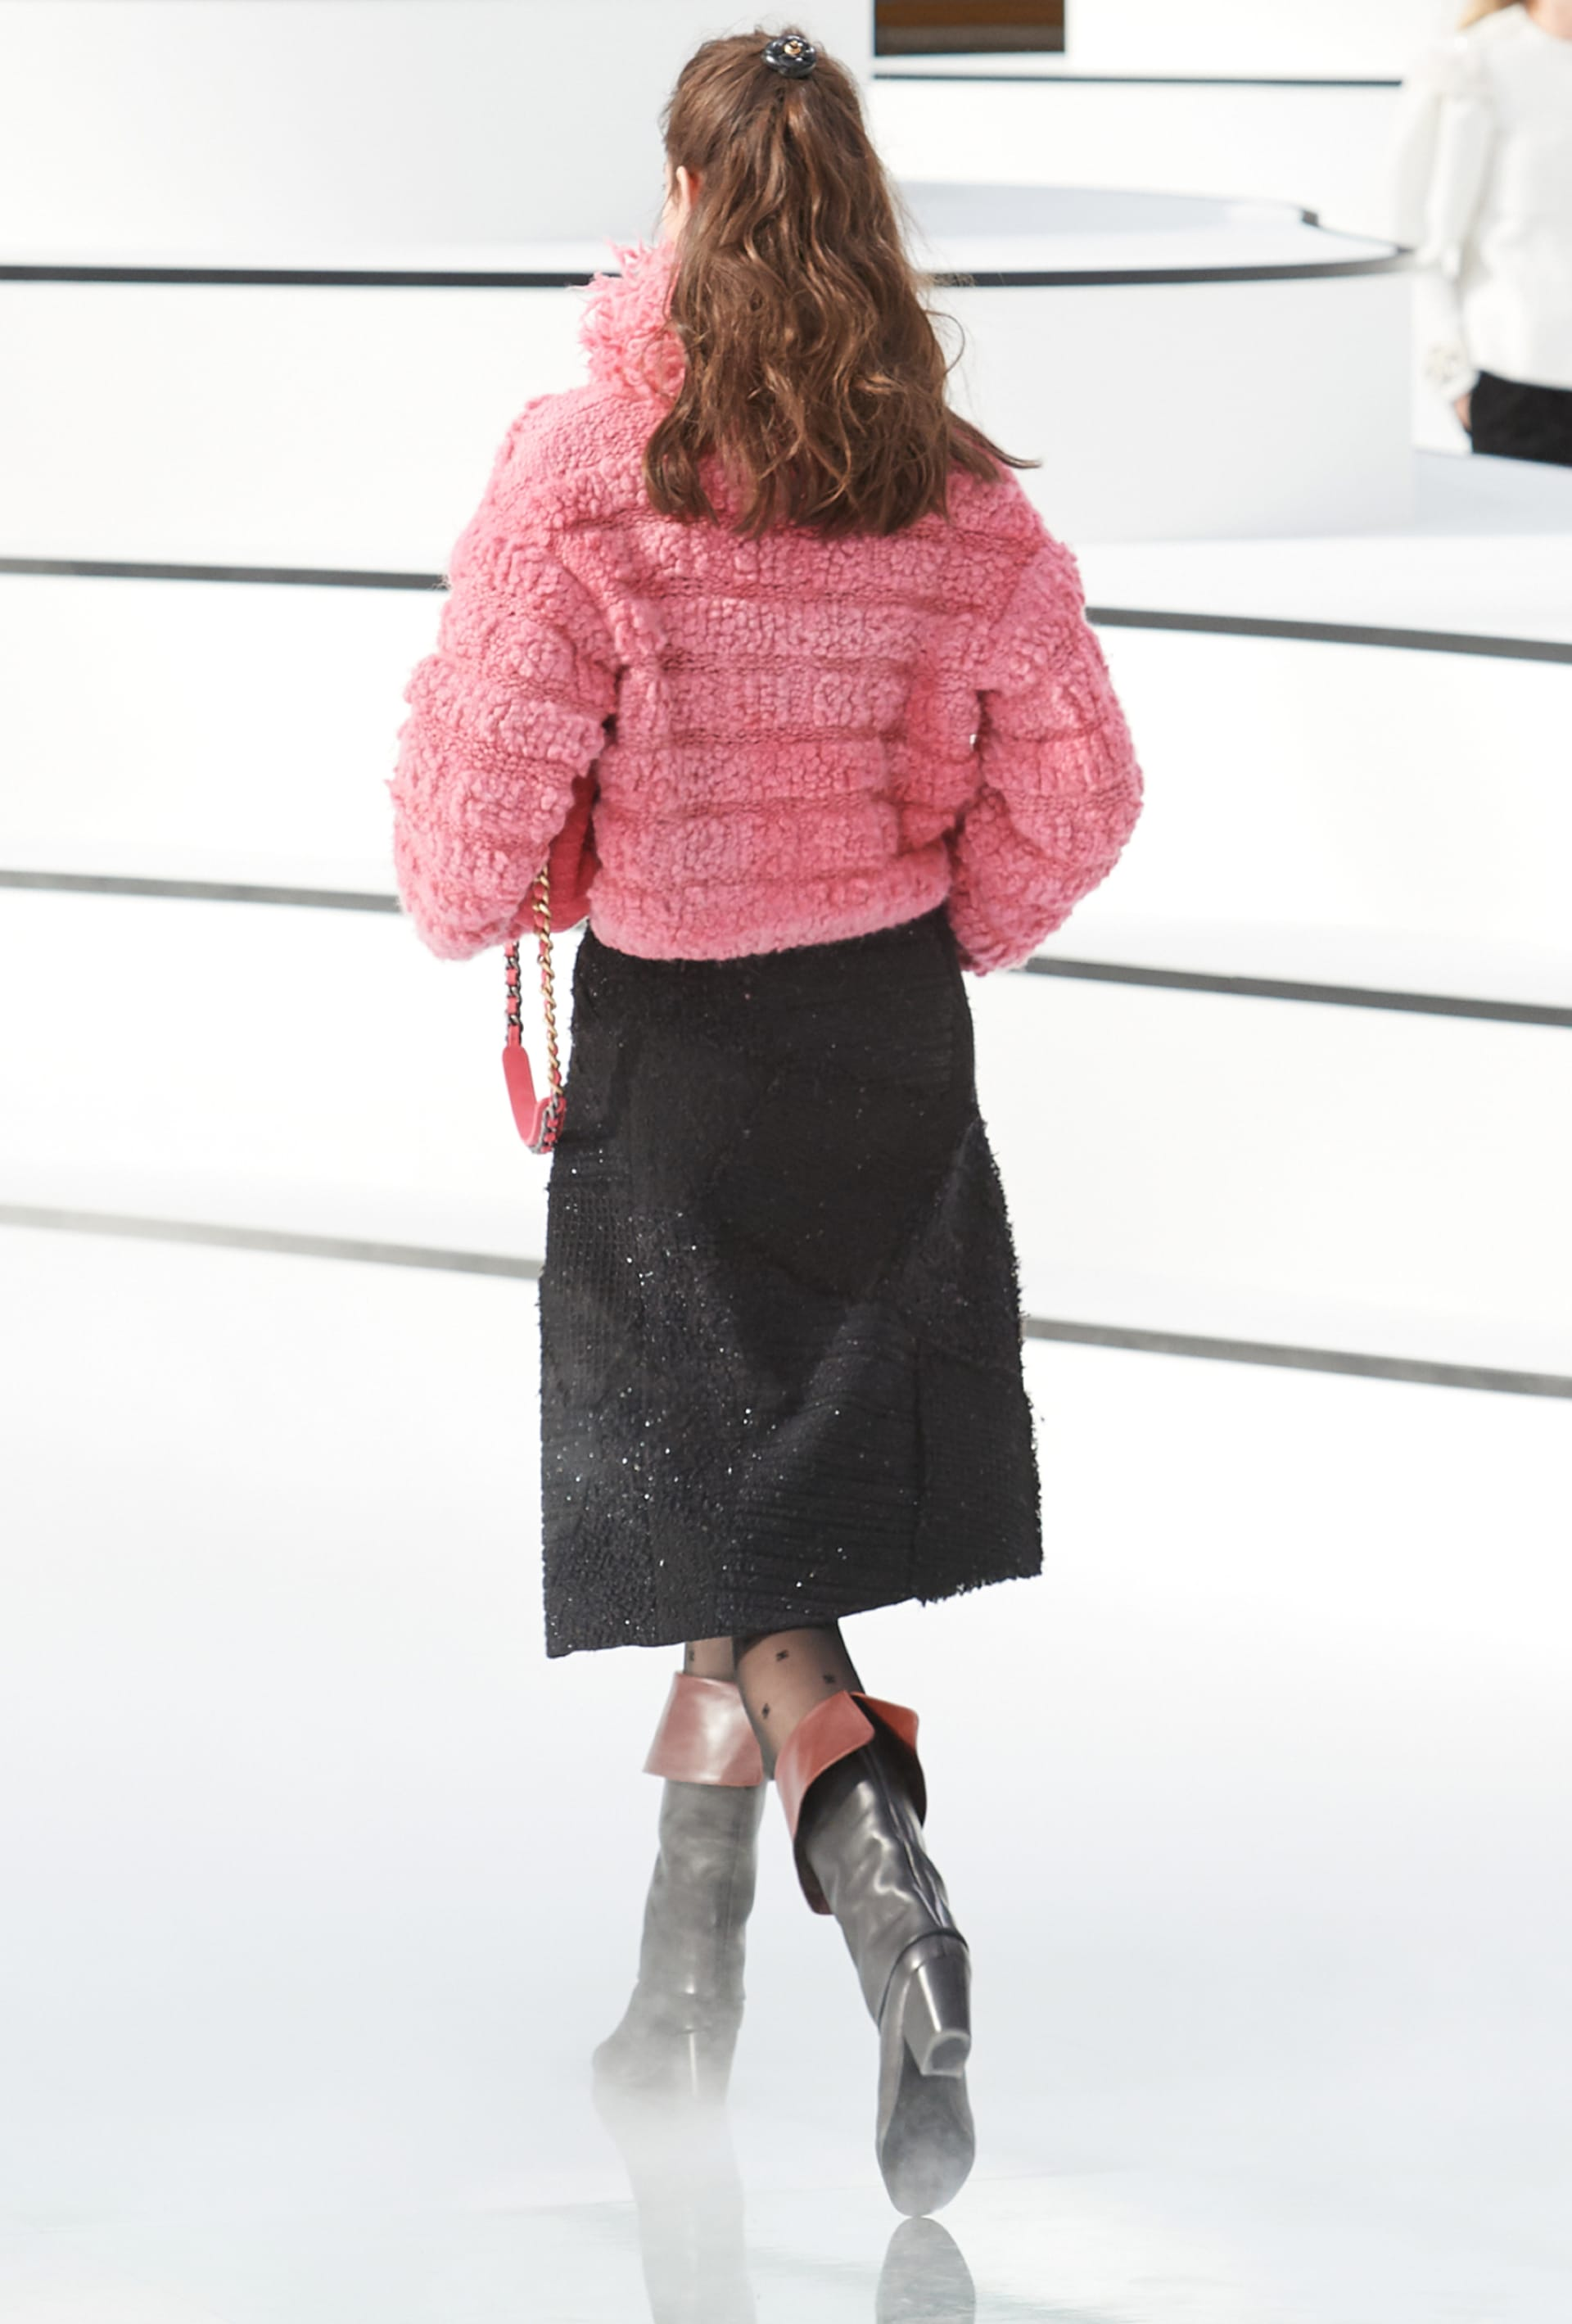 Additional image 3 - Look  33 -  - Fall-Winter 2020/21